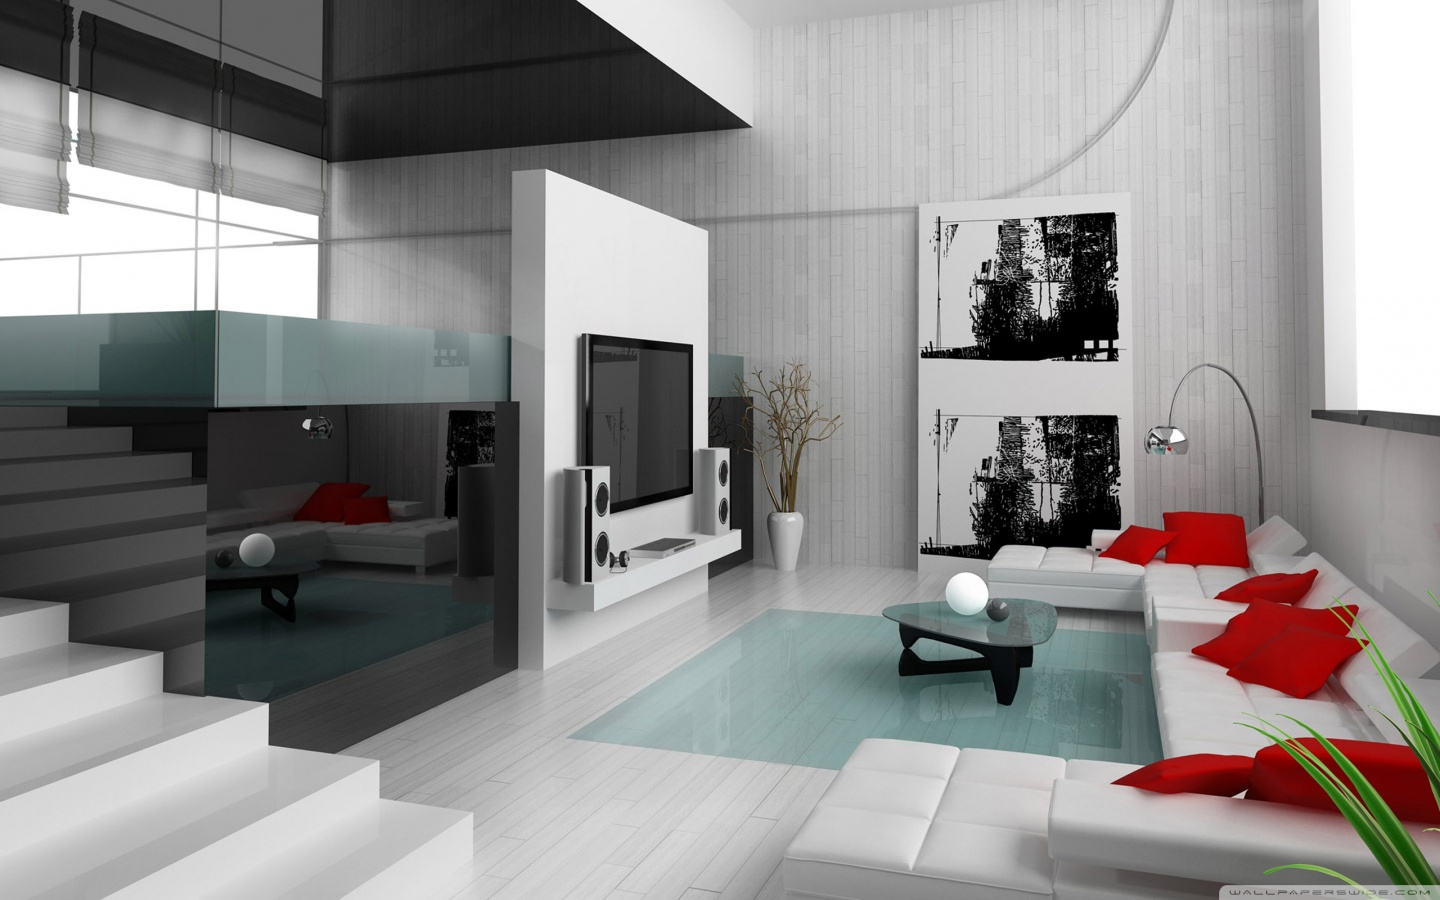 Minimalist interior design imagination art architecture for Home inner design